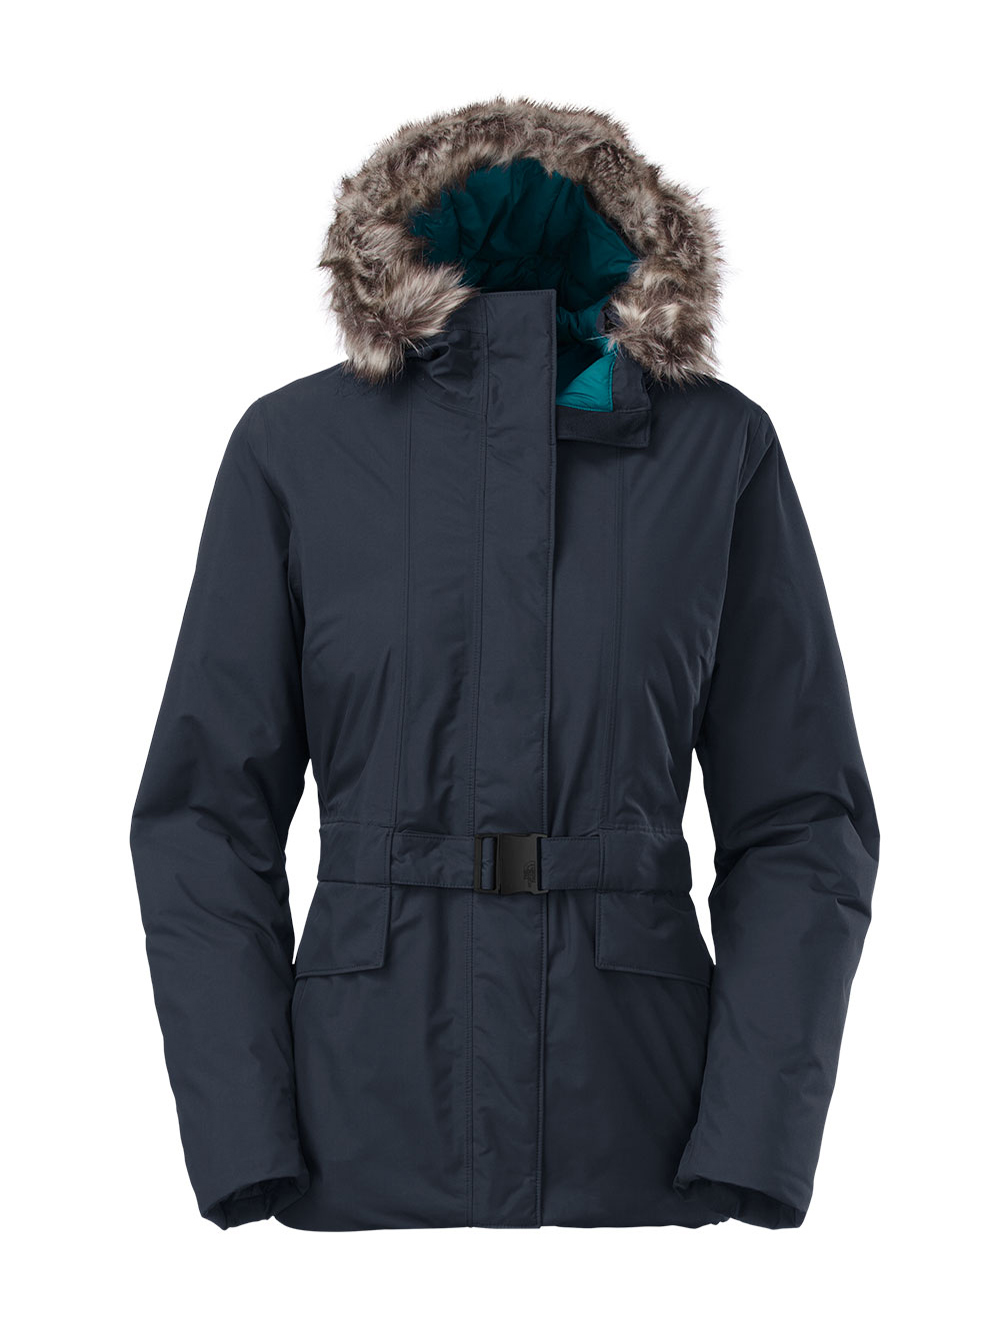 The North Face Women's Dunagiri Jacket (Sizes S - XL)